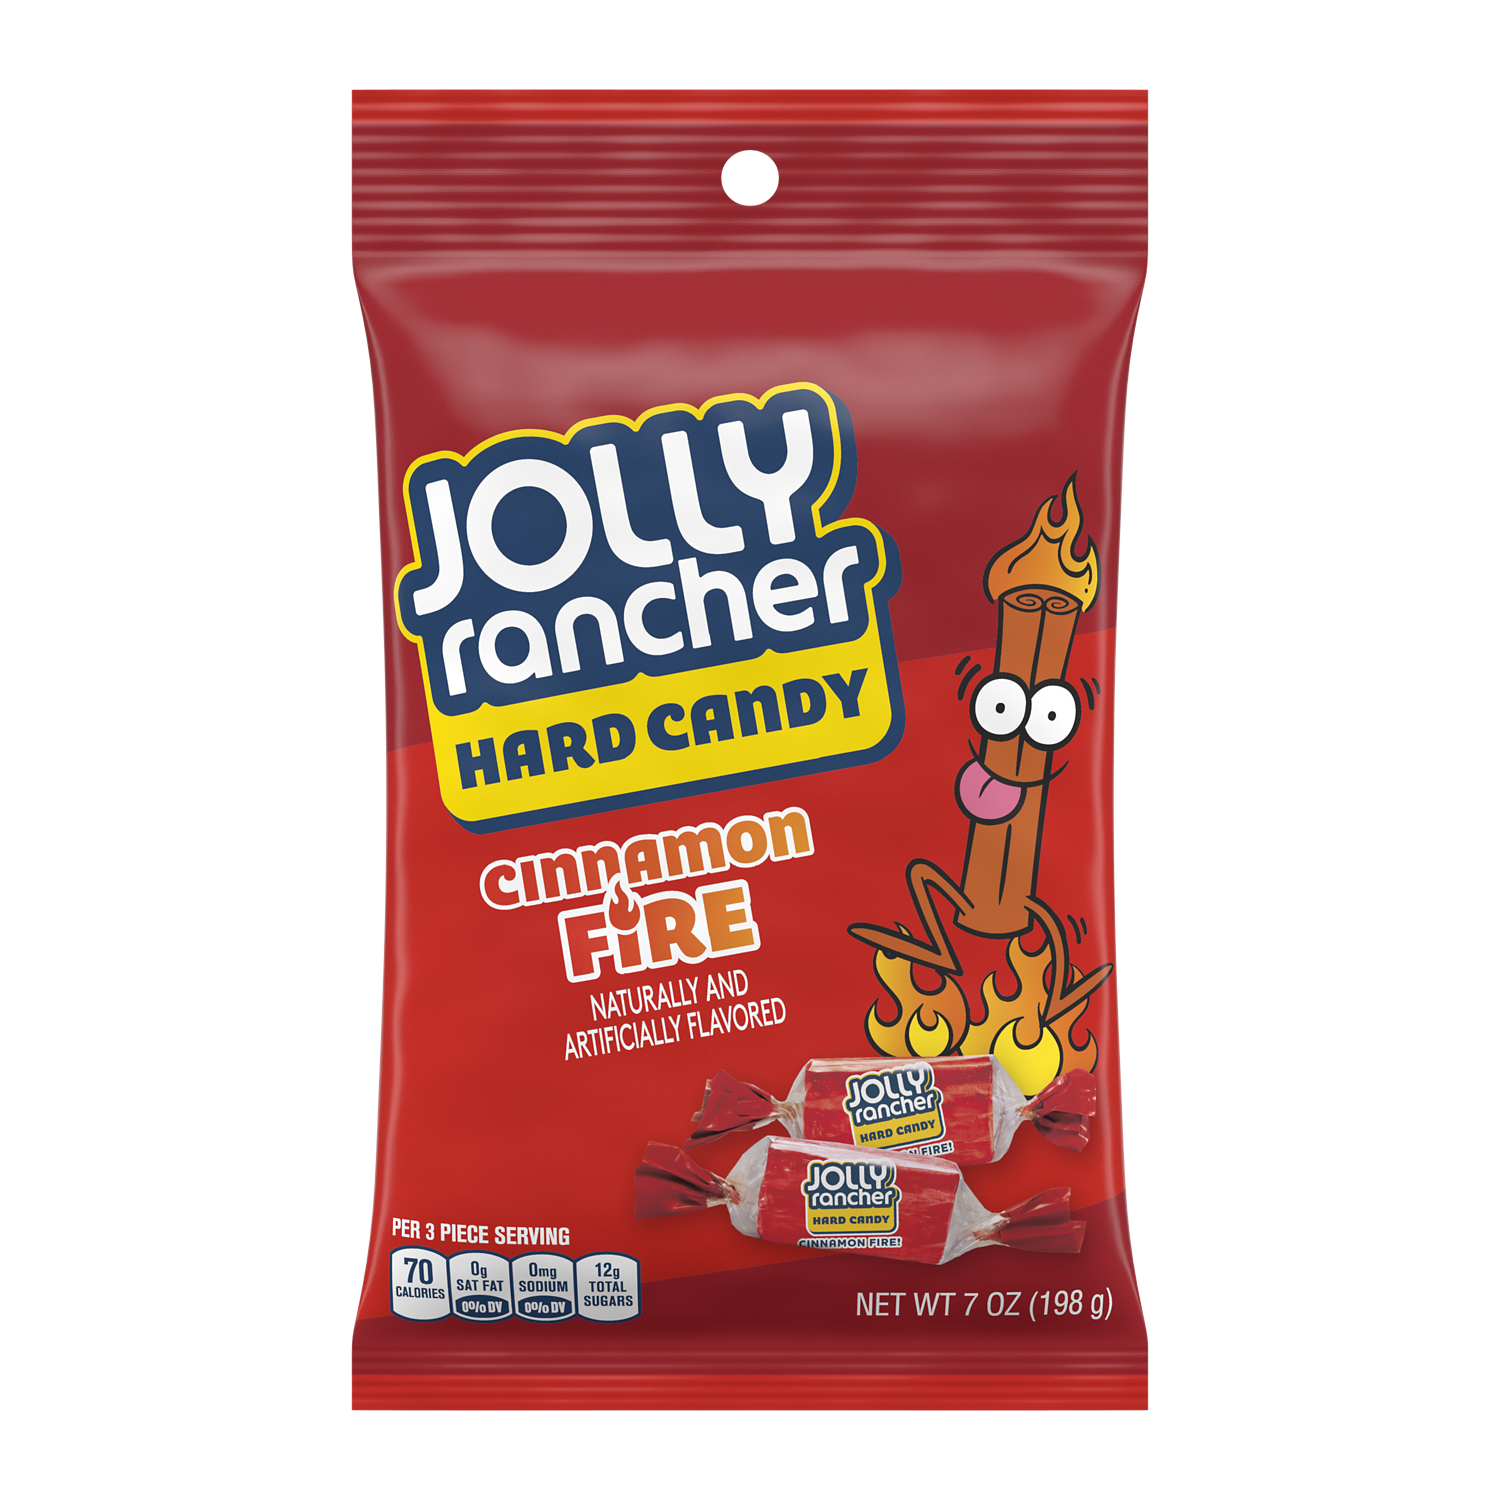 JOLLY RANCHER Cinnamon Fire Hard Candy, 7 oz bag - Front of Package